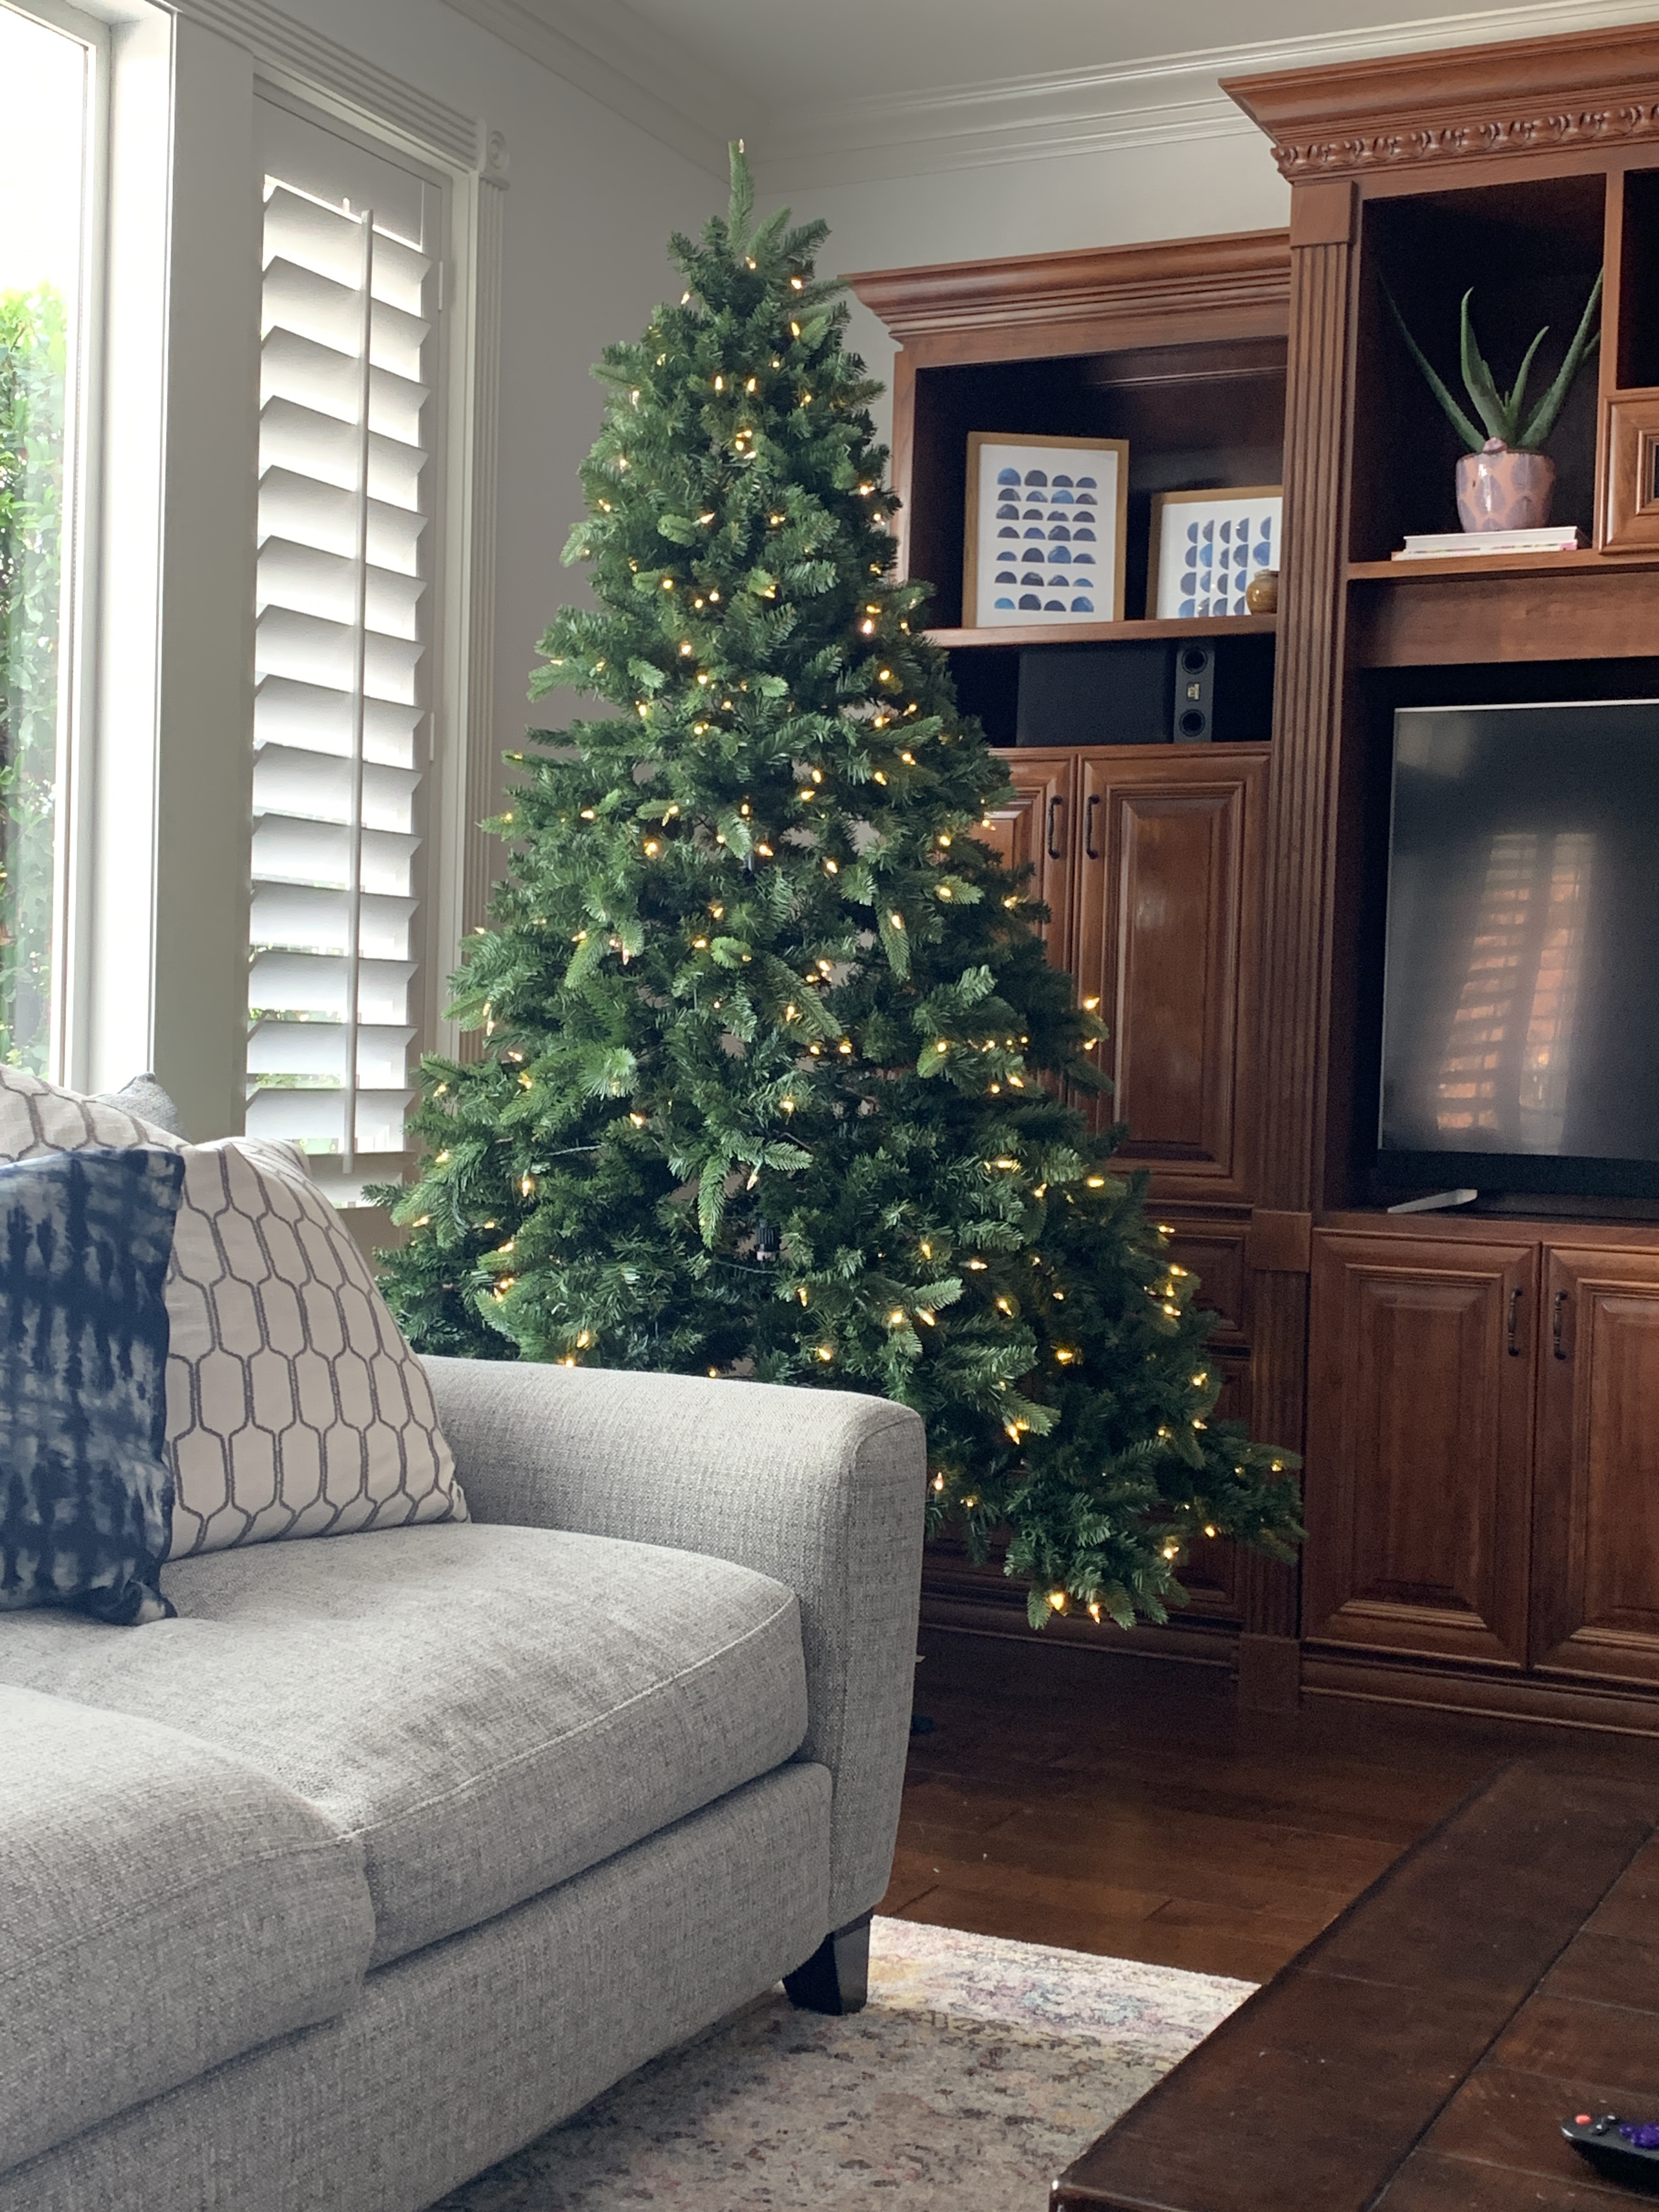 Classic Red And Green Christmas Tree Color Decor With Slight Farmhouse Feel All Things Thrifty